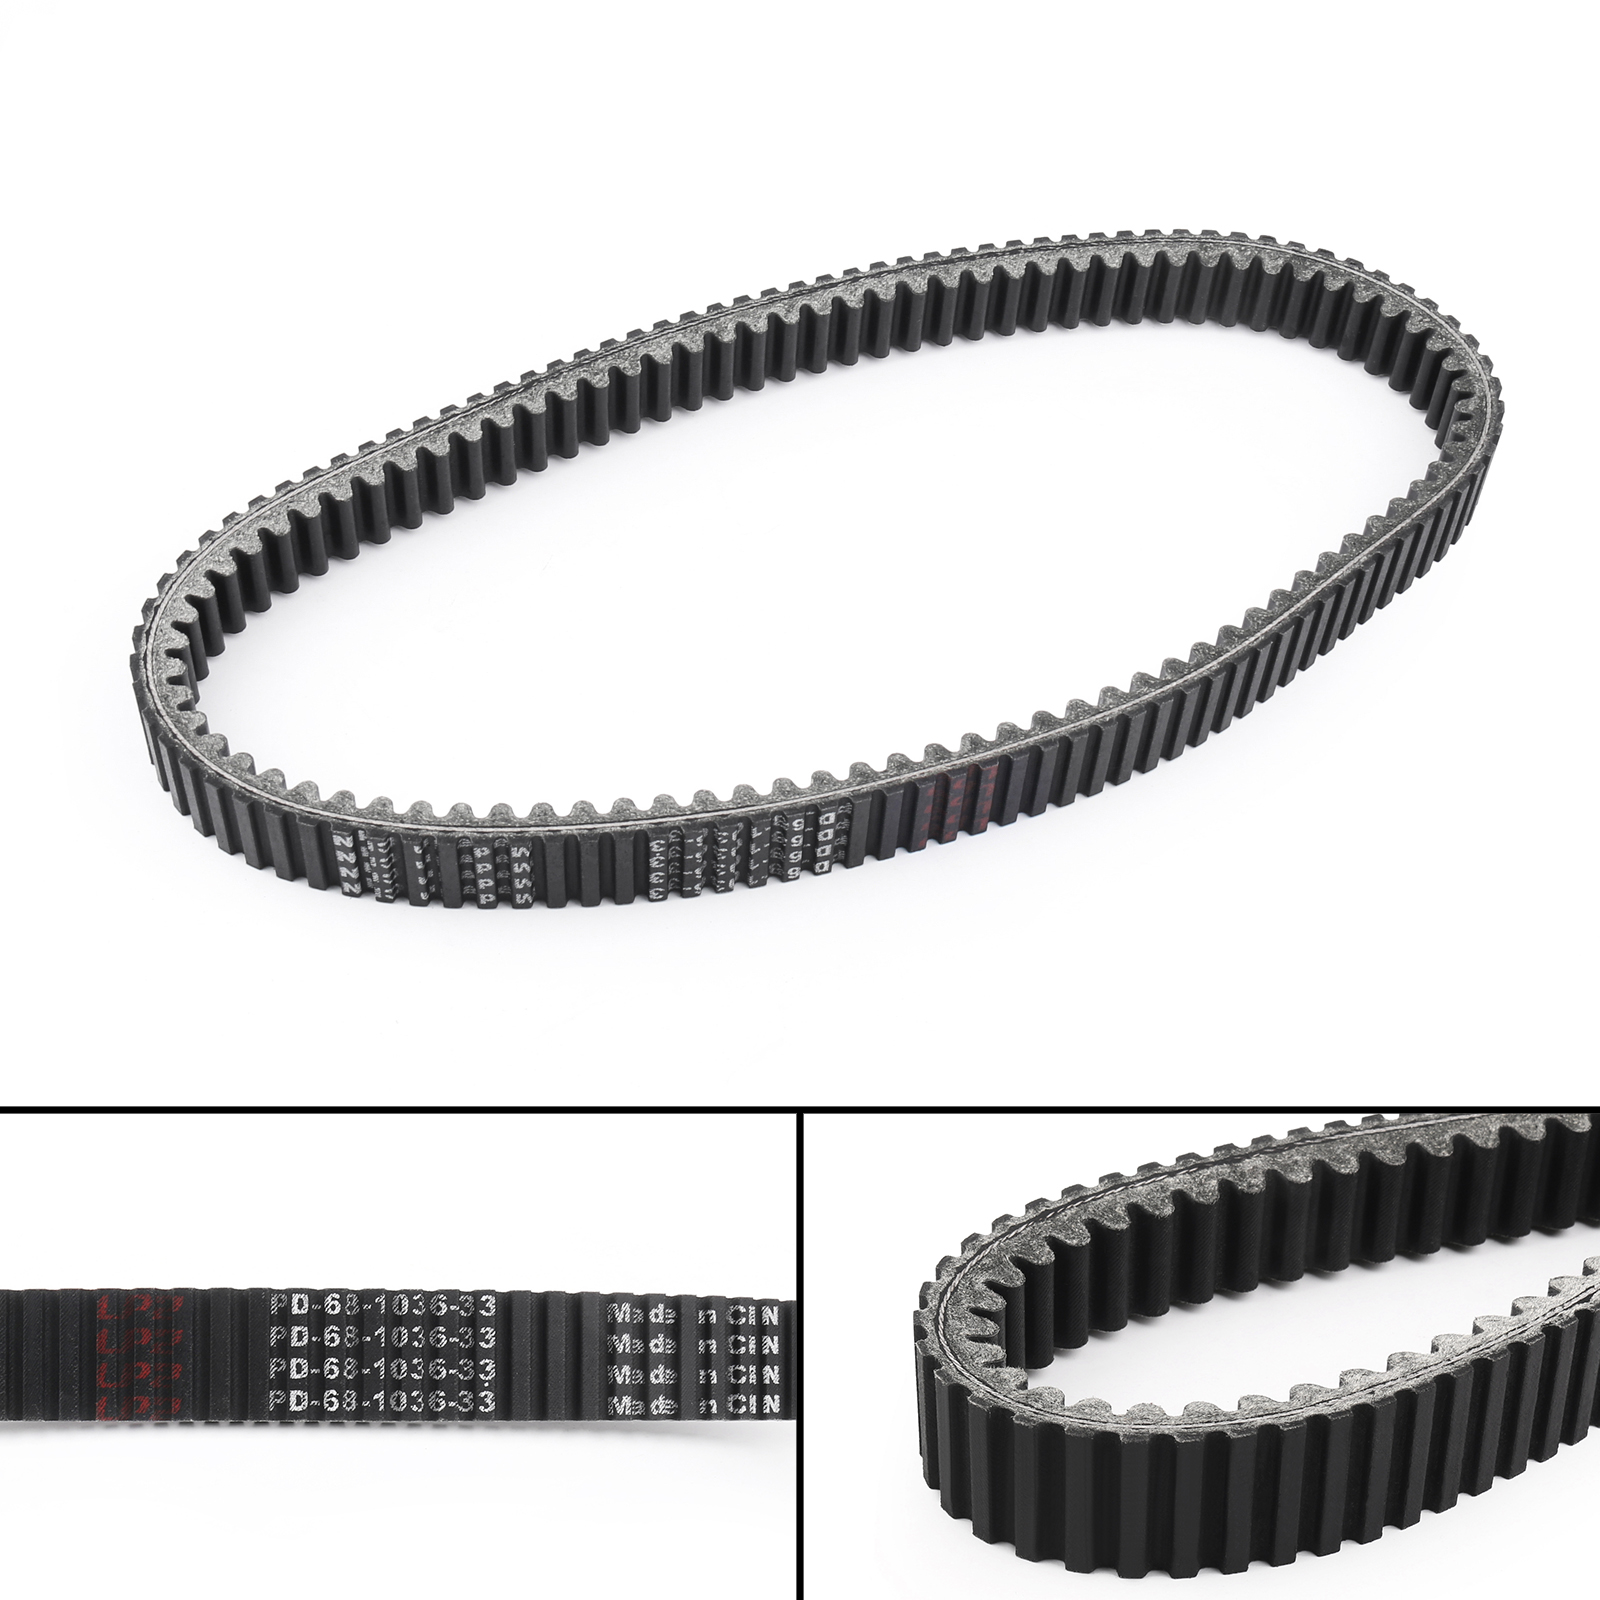 Artudatech Drive Belt 0823-497 For Arctic Cat Wildcat Sport 700 2015-18 Trail 700 2014-2018 2016 2017